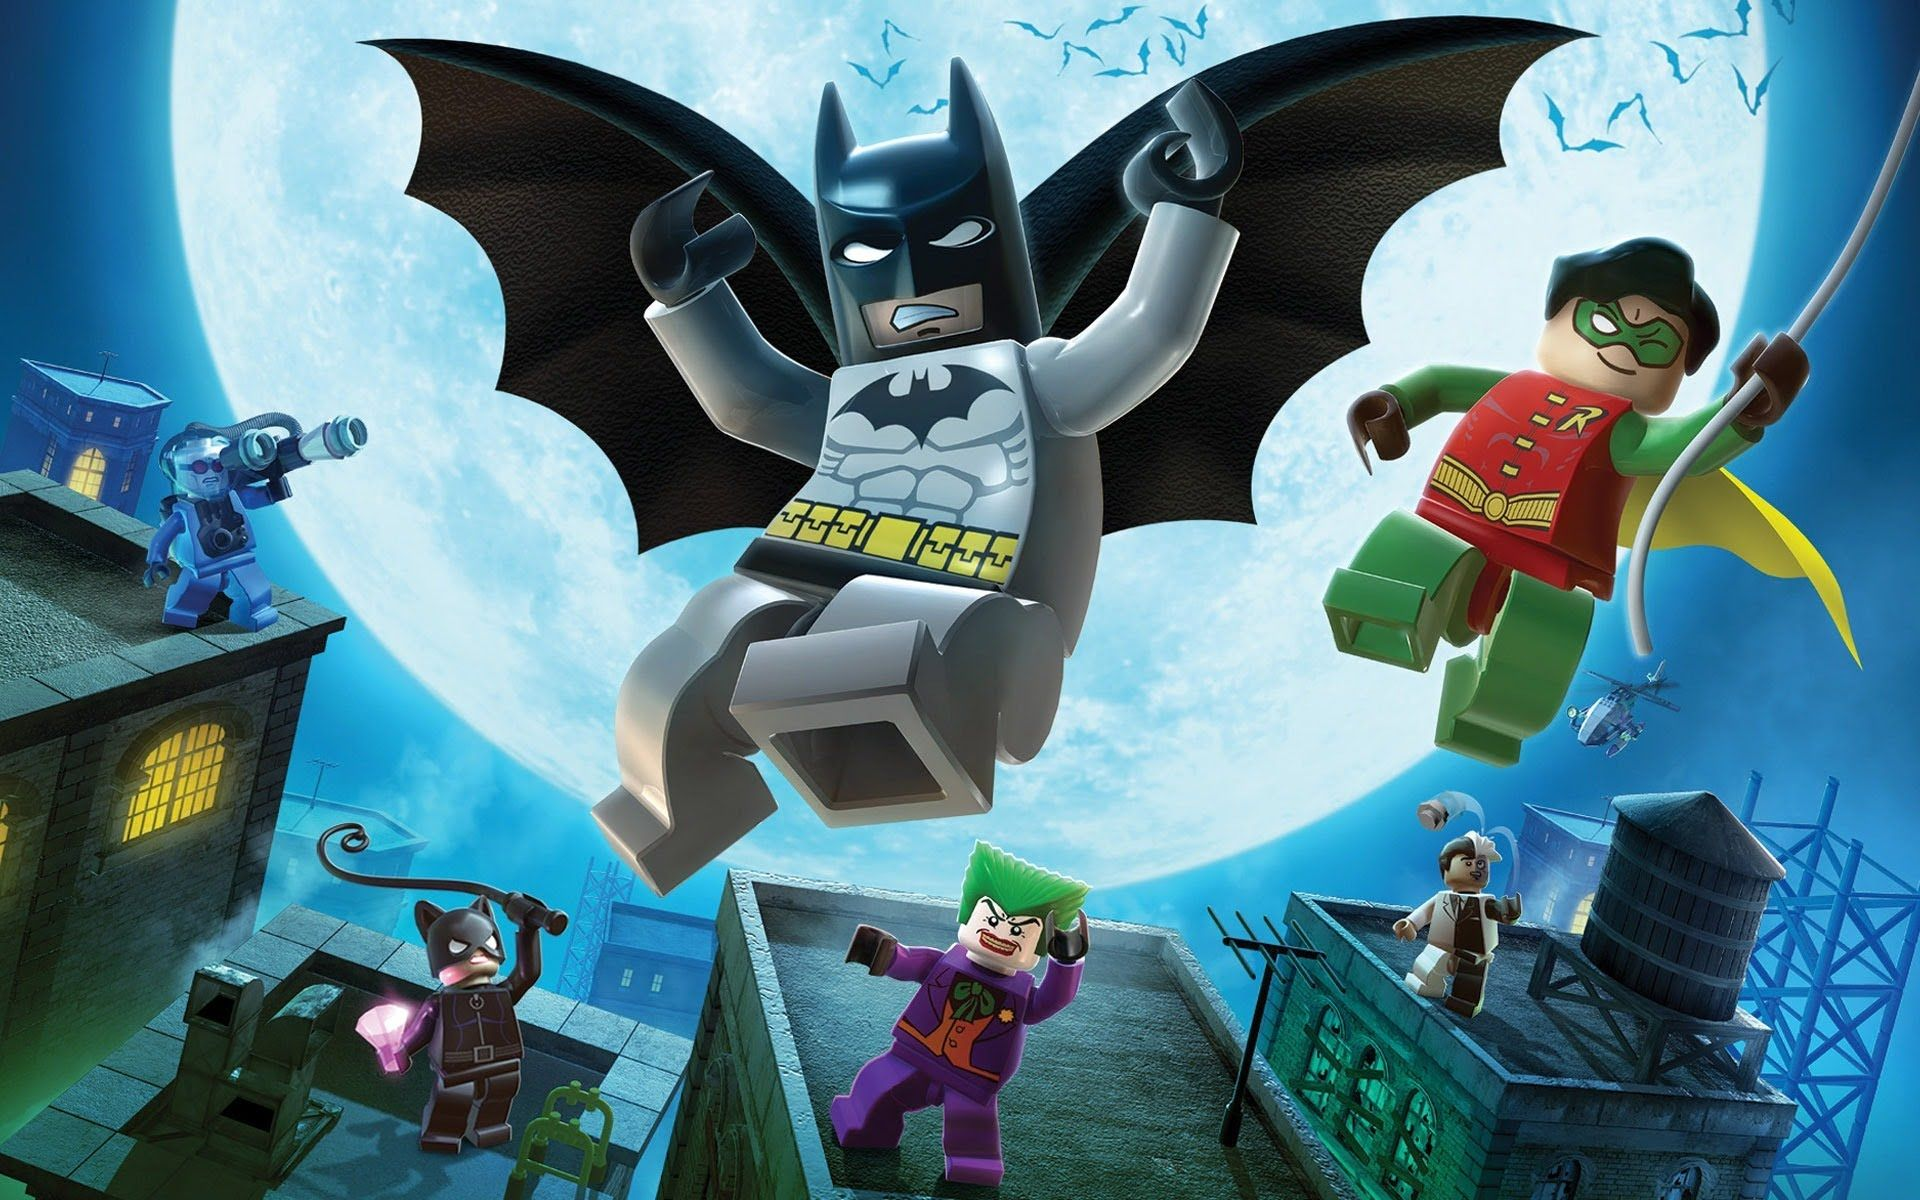 Lego Batman Movie in Development